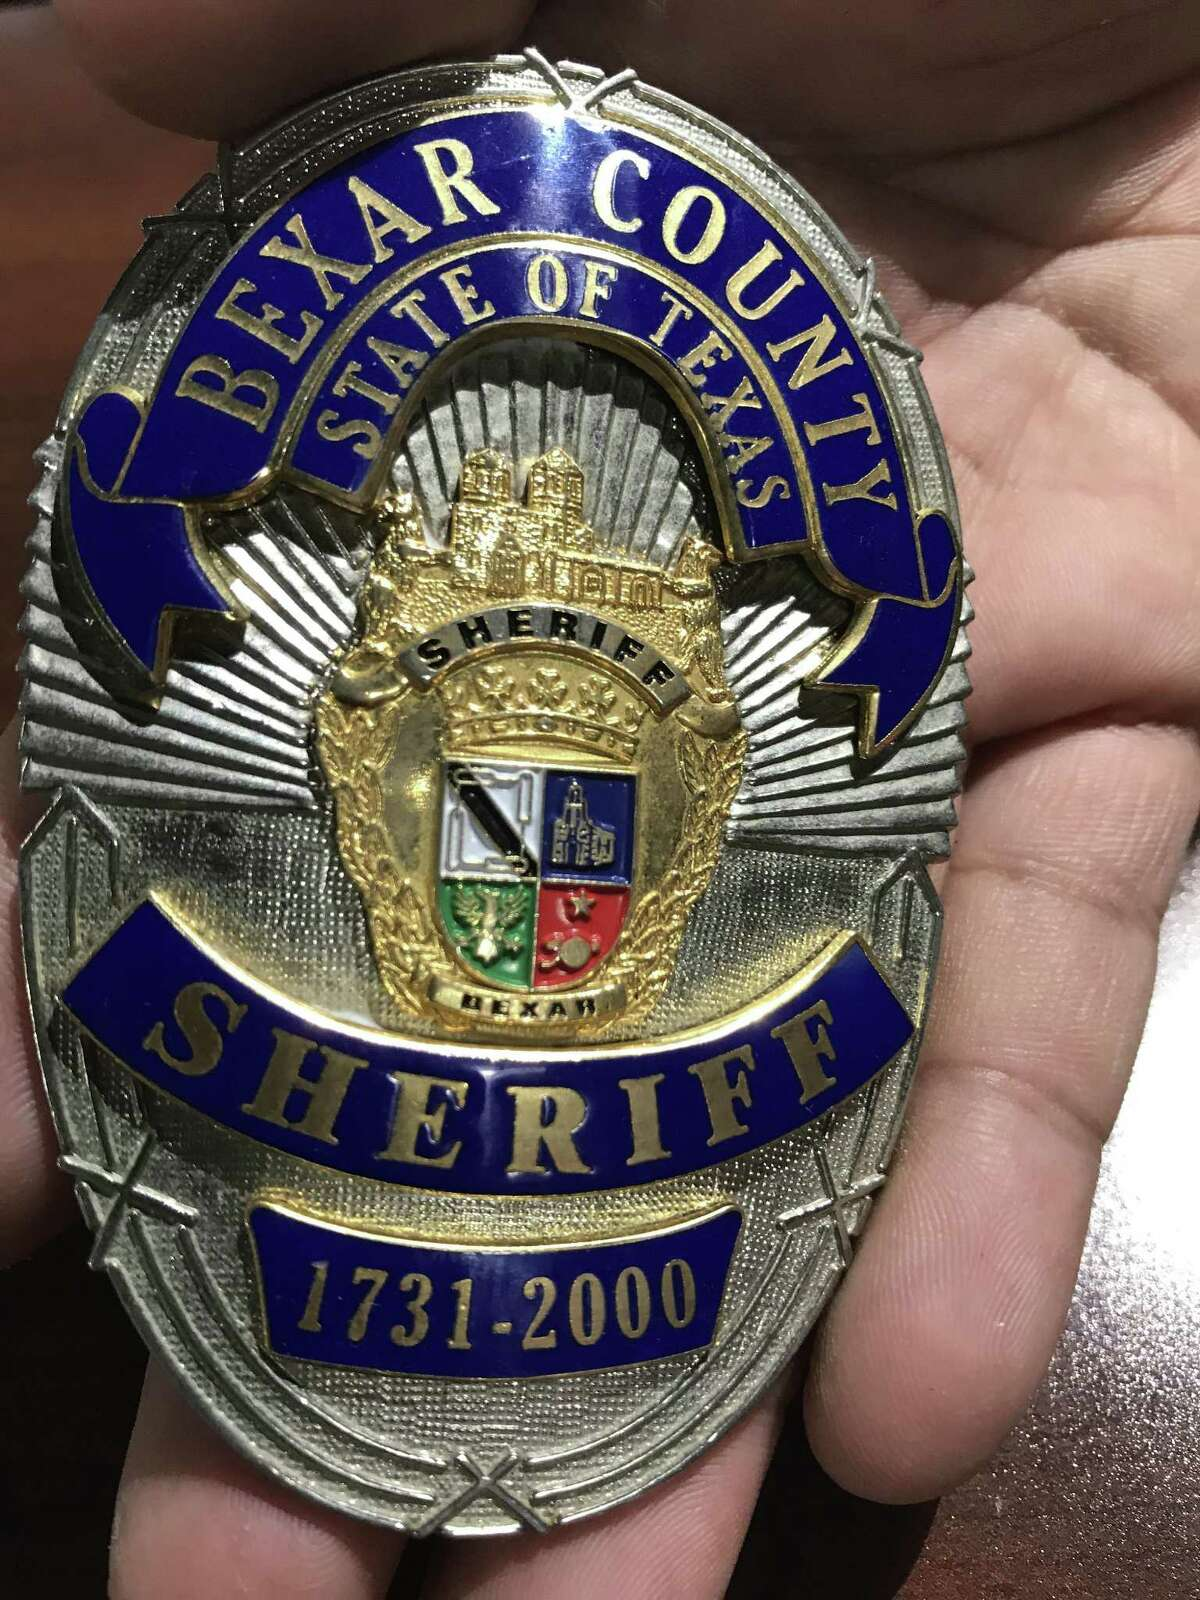 This is a commemorative Bexar County Sheriff's badge released to celebrate the turn of the millennium. The front shows the seal of Bexar County and the years 1731-2000. The back has an up-to-then complete list of sheriff deputies killed in the line of duty.